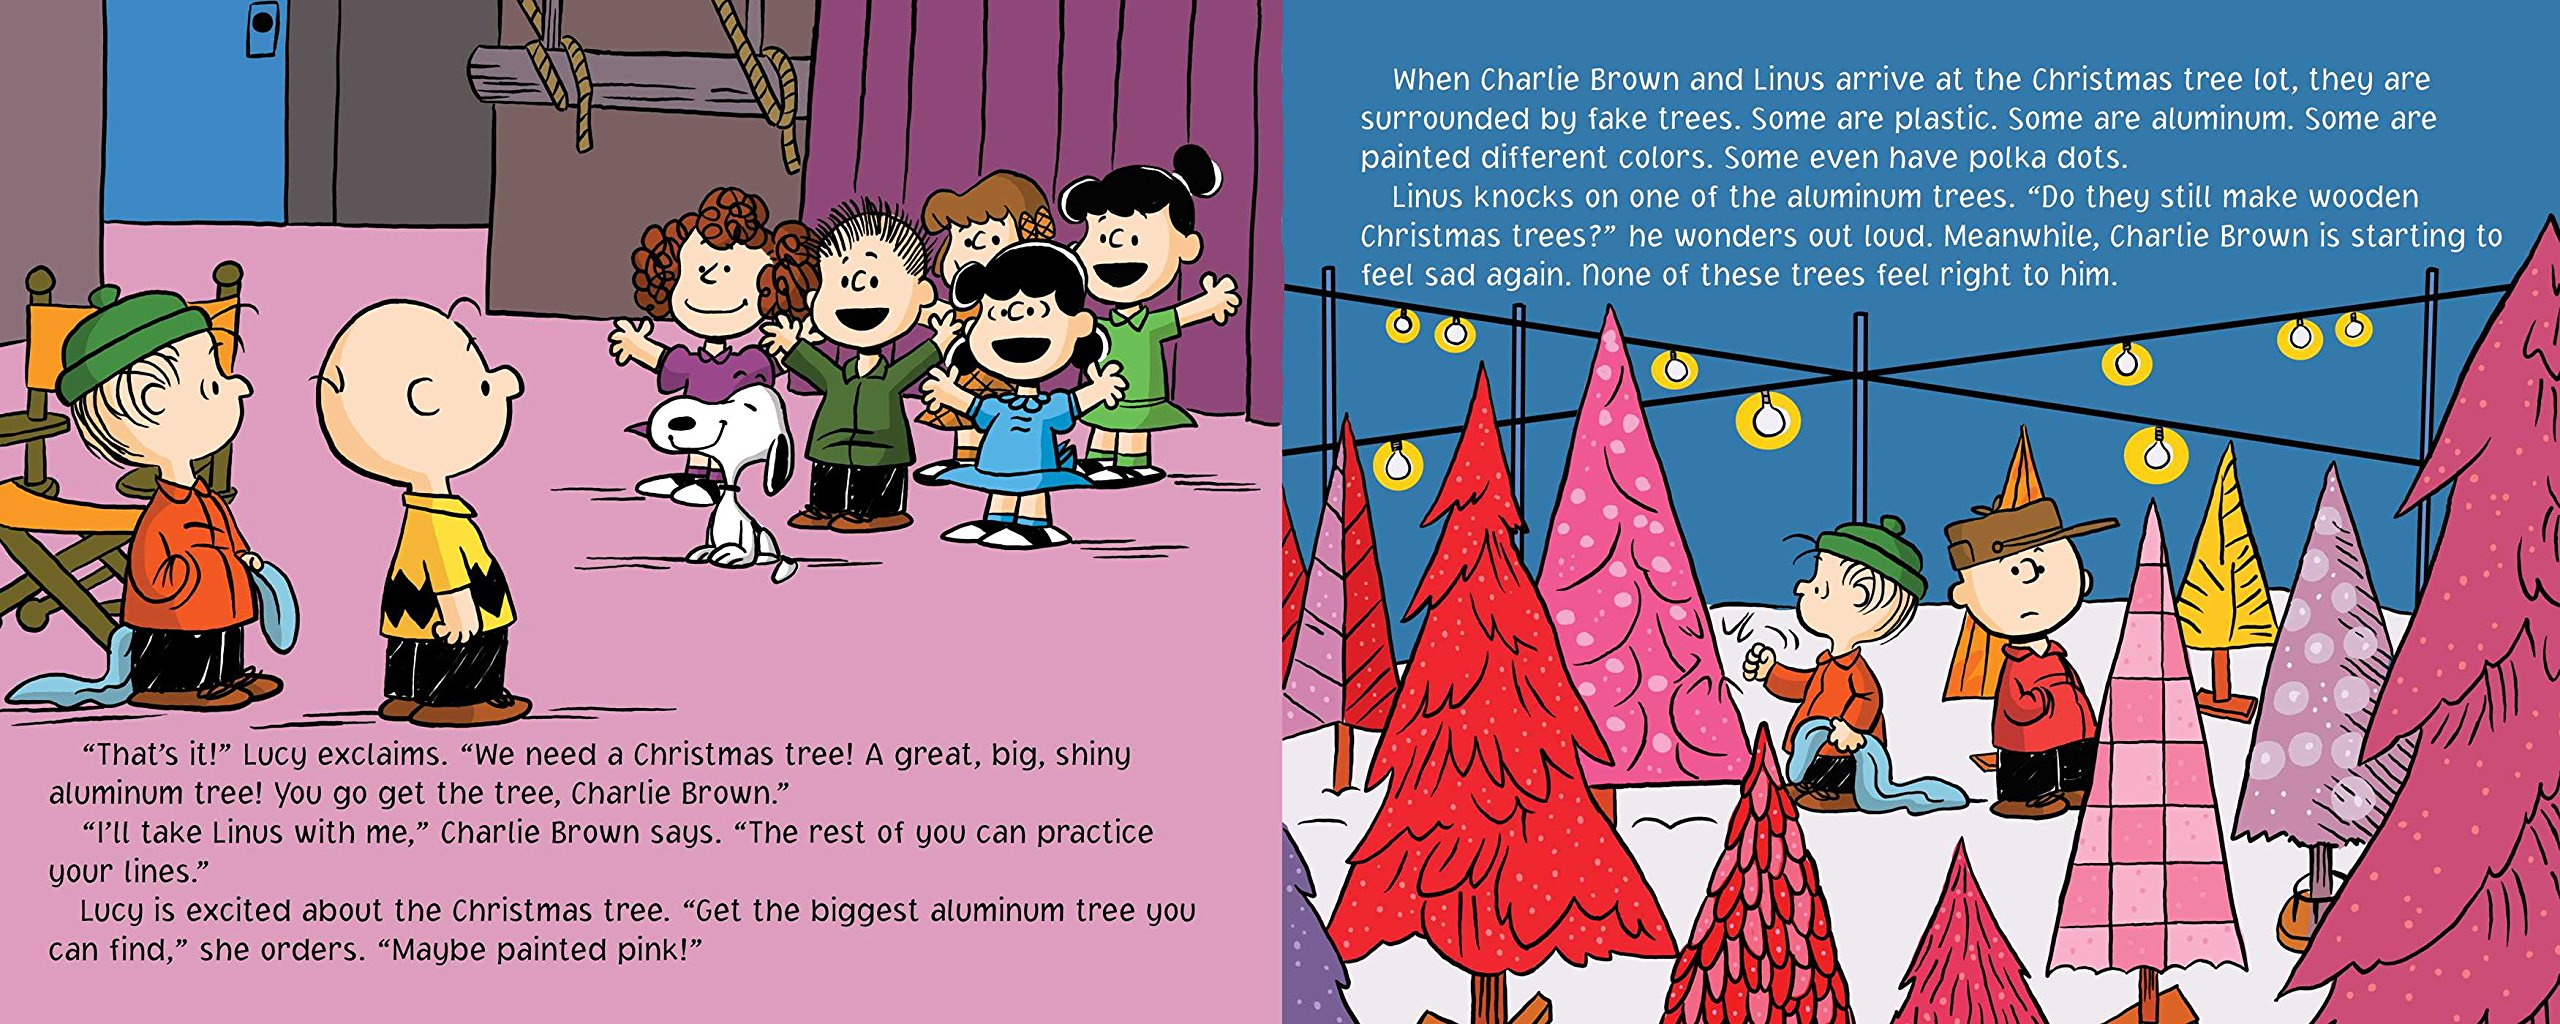 a charlie brown christmas peanuts tina gallo charles m schulz scott jeralds 9781481444323 amazoncom books - Charlie Browns Christmas